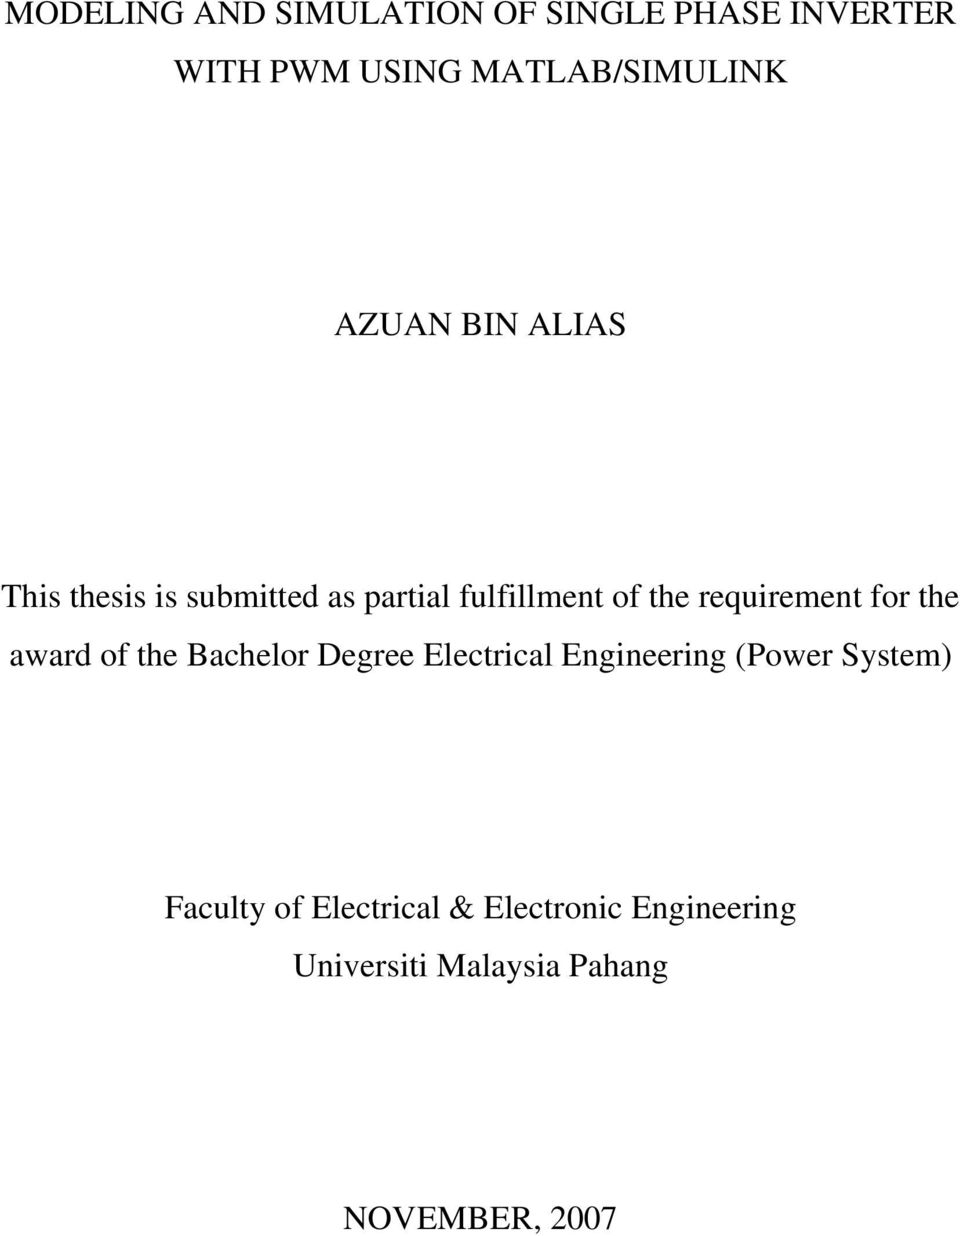 requirement for the award of the Bachelor Degree Electrical Engineering (Power